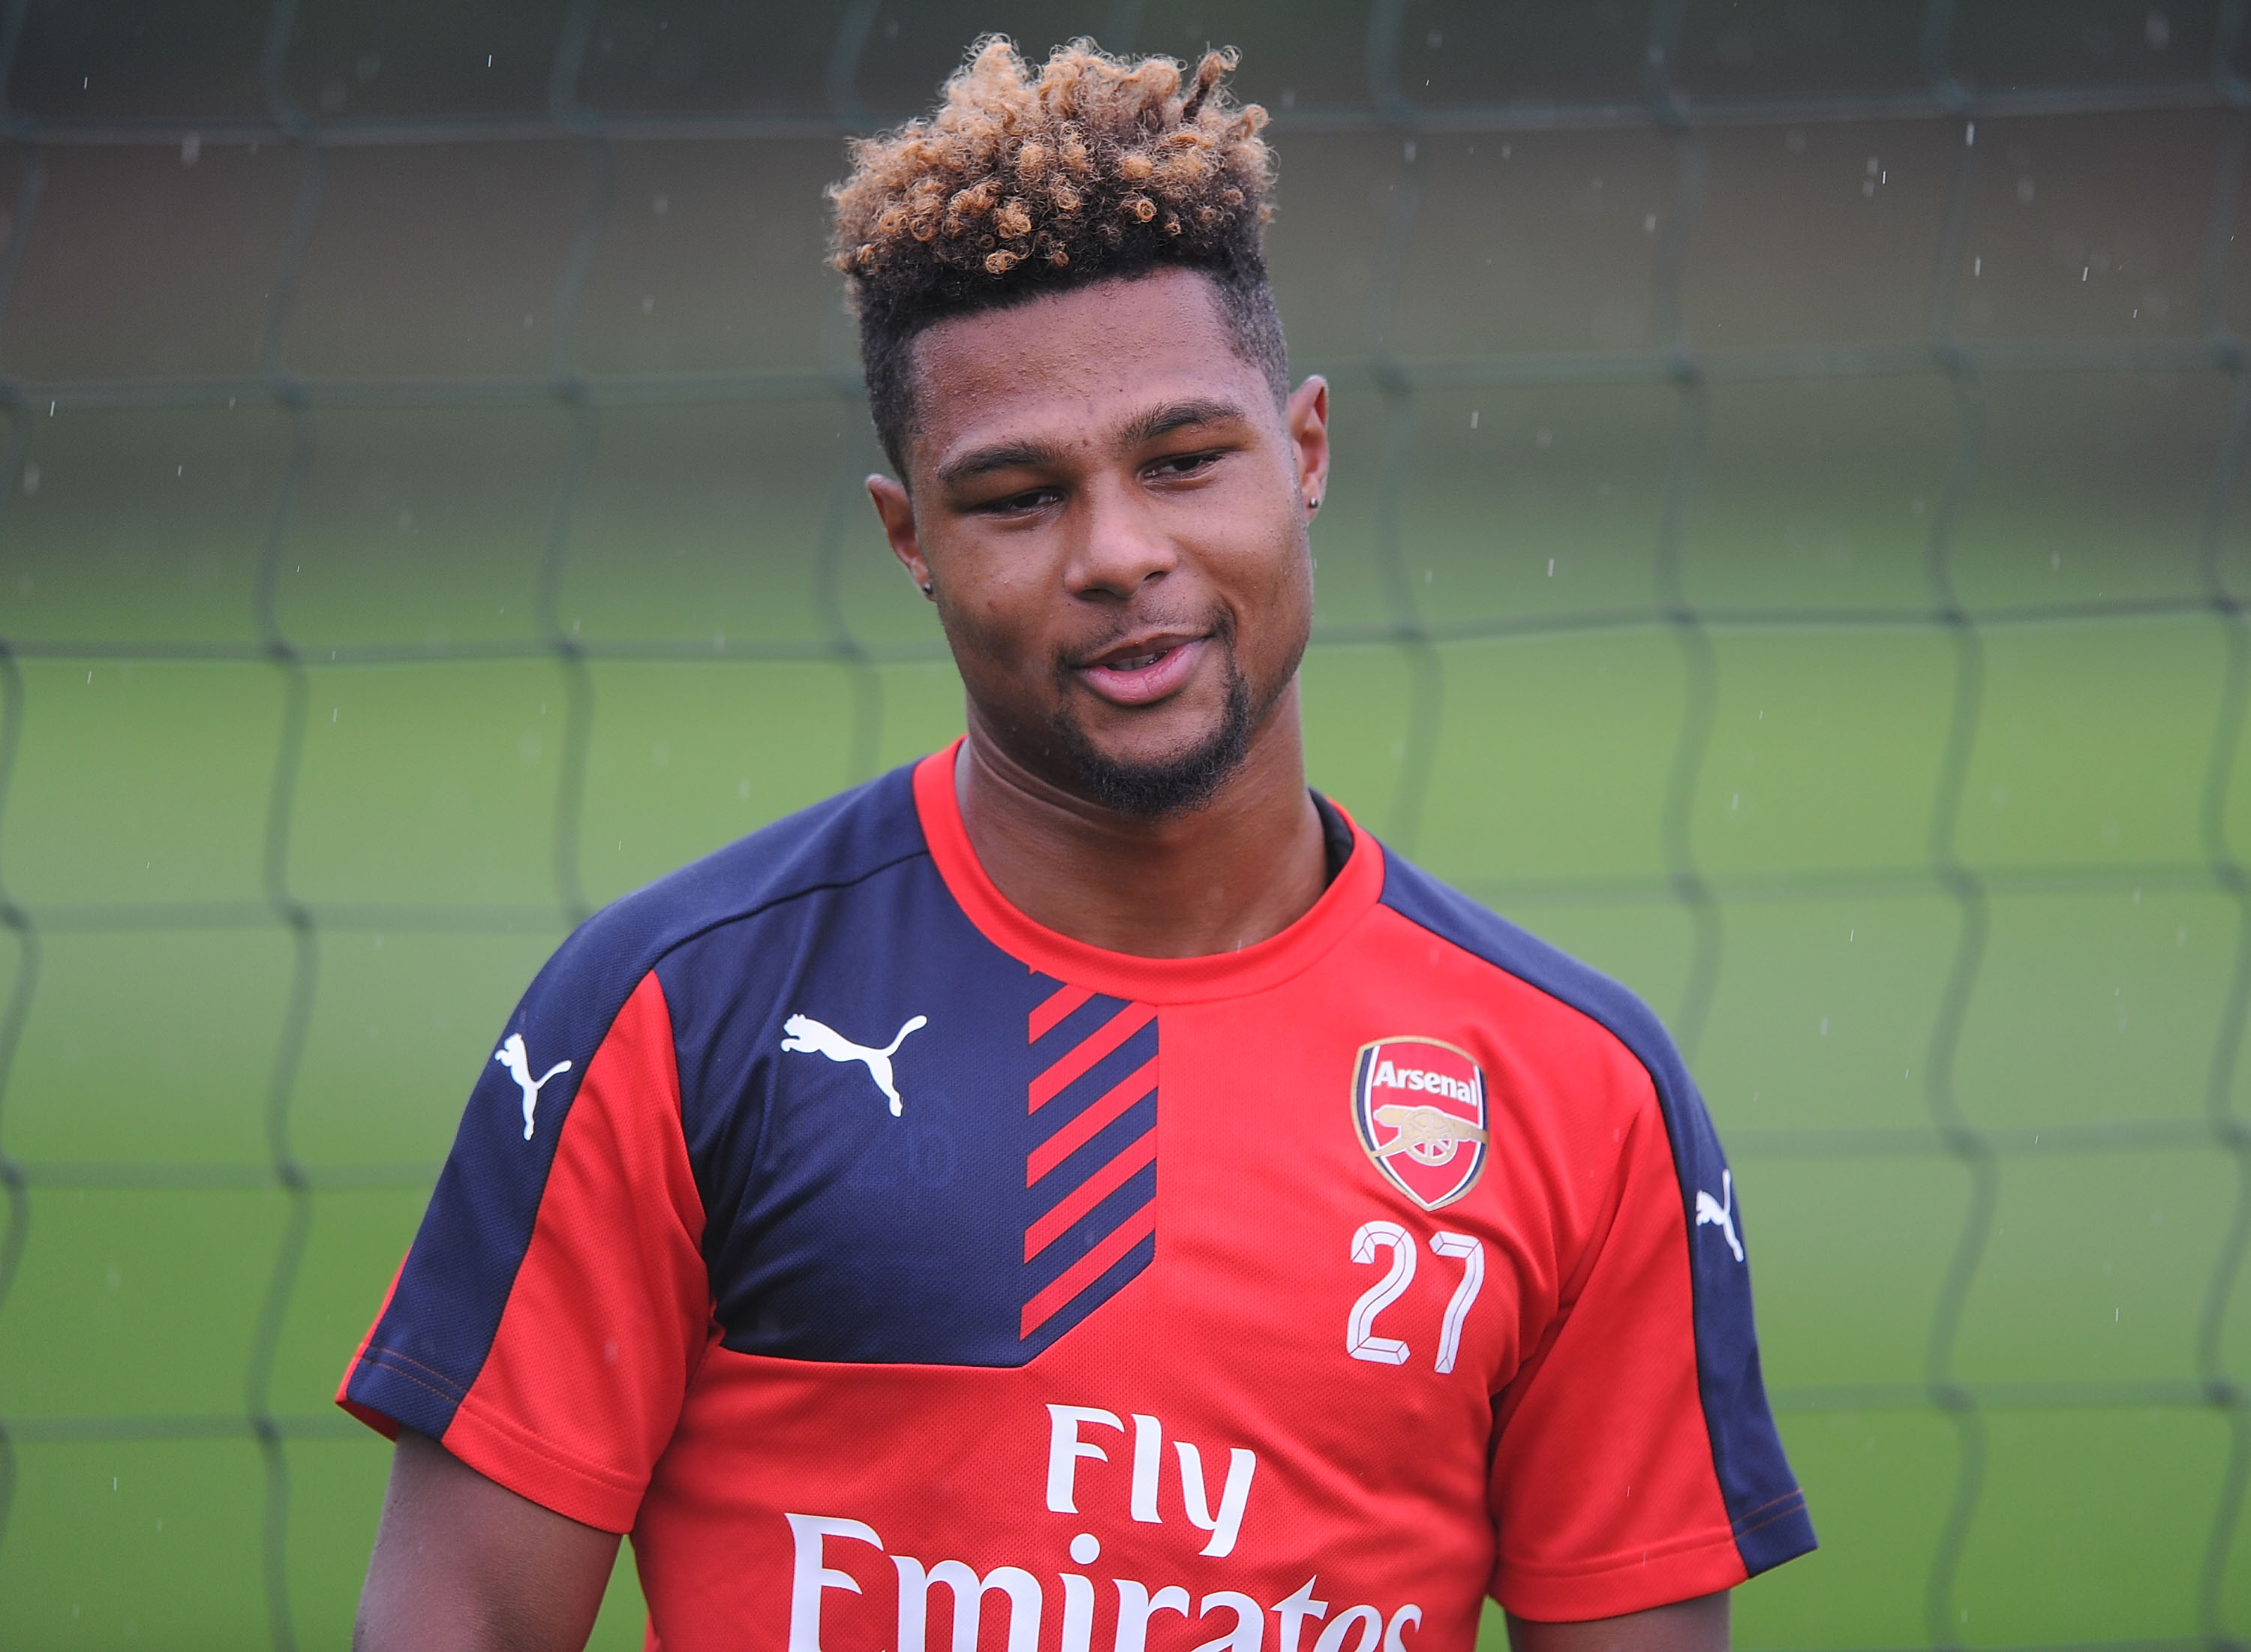 Bayern Munich sign Arsenal youngster Serge Gnabry, according to his father